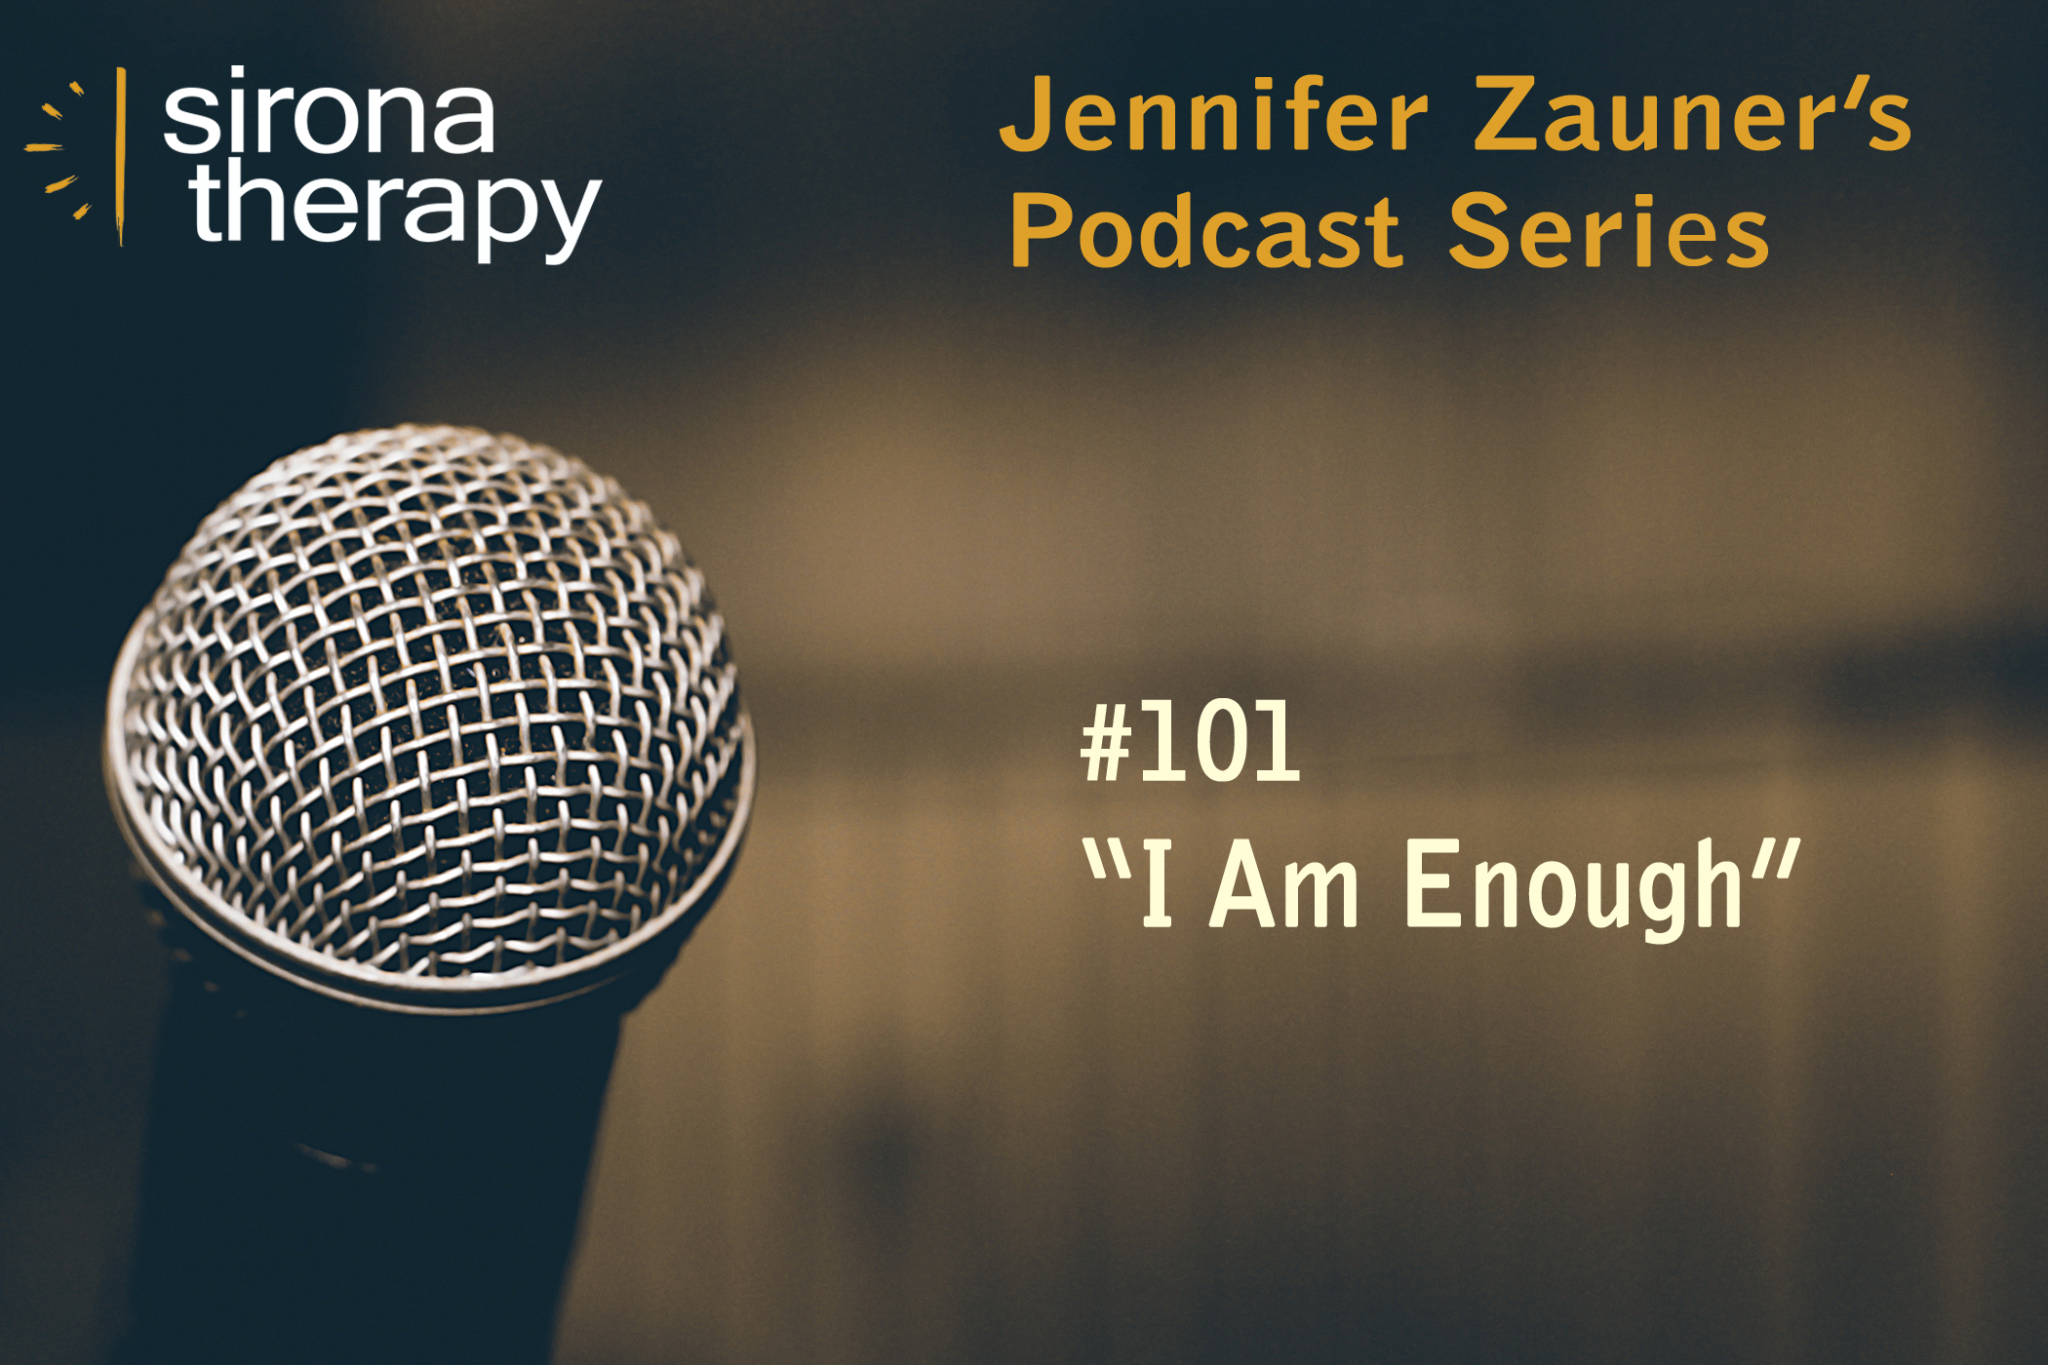 Jennifer Zauner's Podcast Series-Self Esteem pscyhotherapist mount kisco ny westchester county ny fairfield county ct sirona therapy